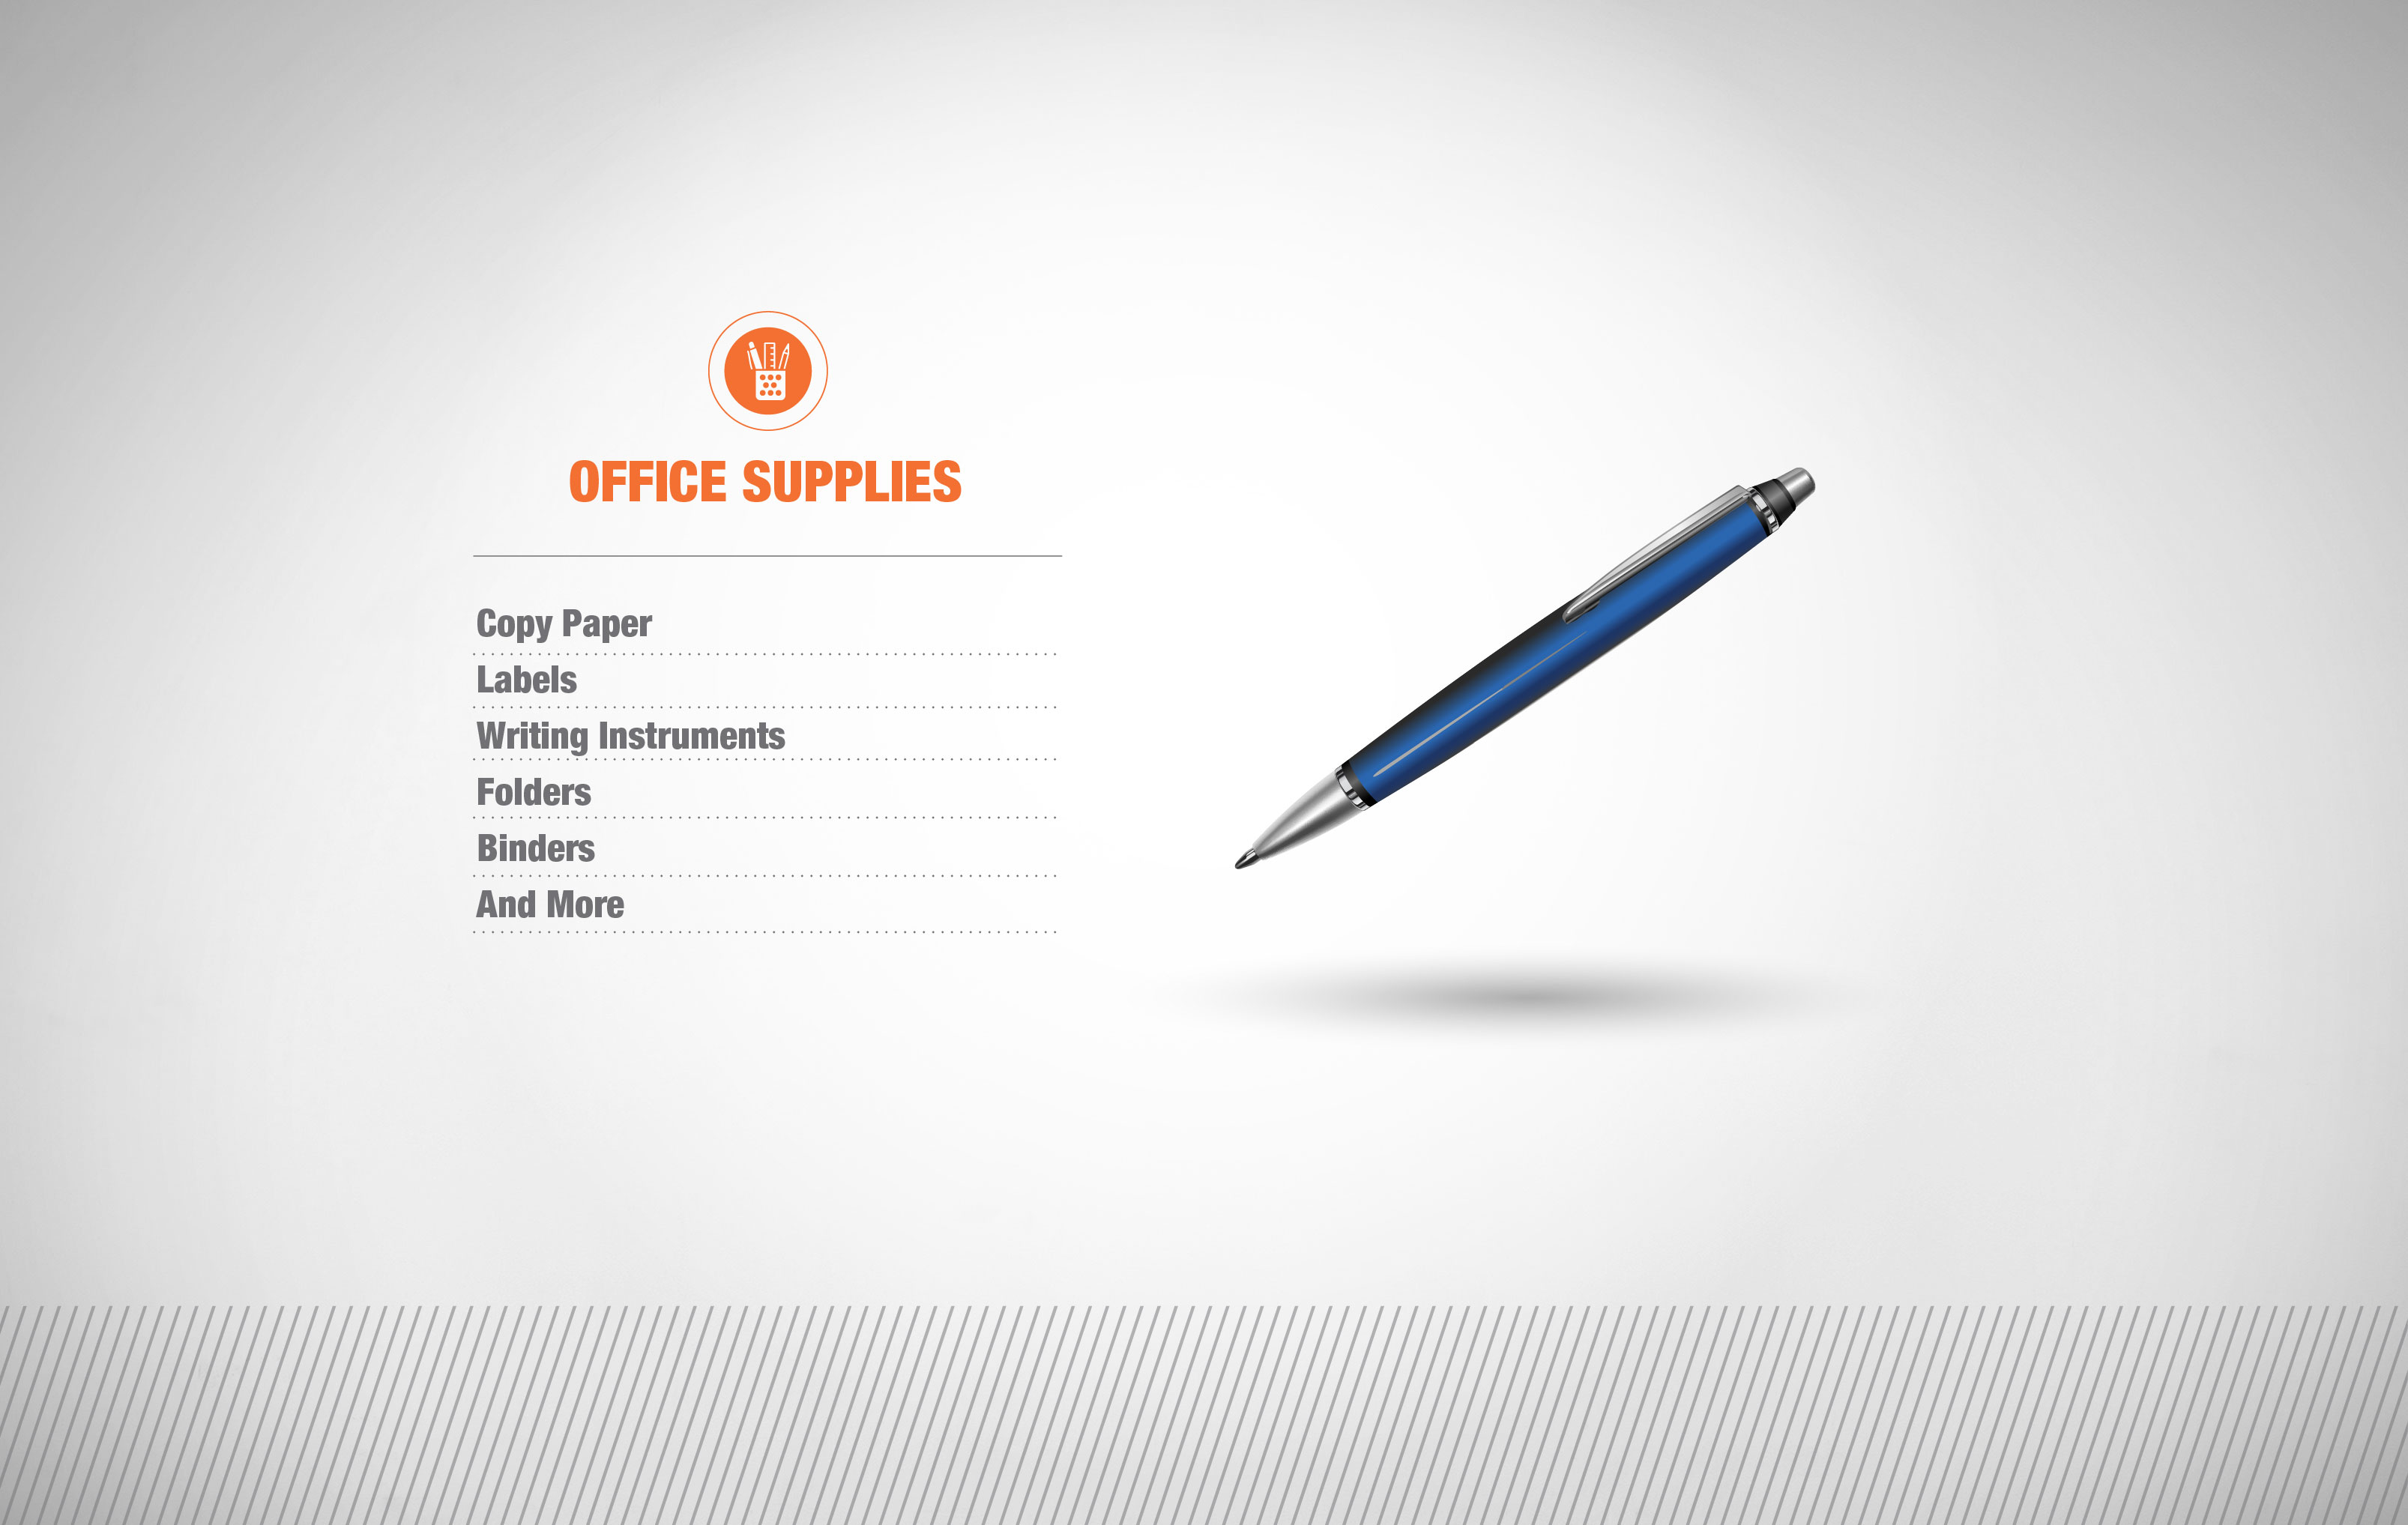 Merveilleux Office Products Nationwide   Portland Office Supply